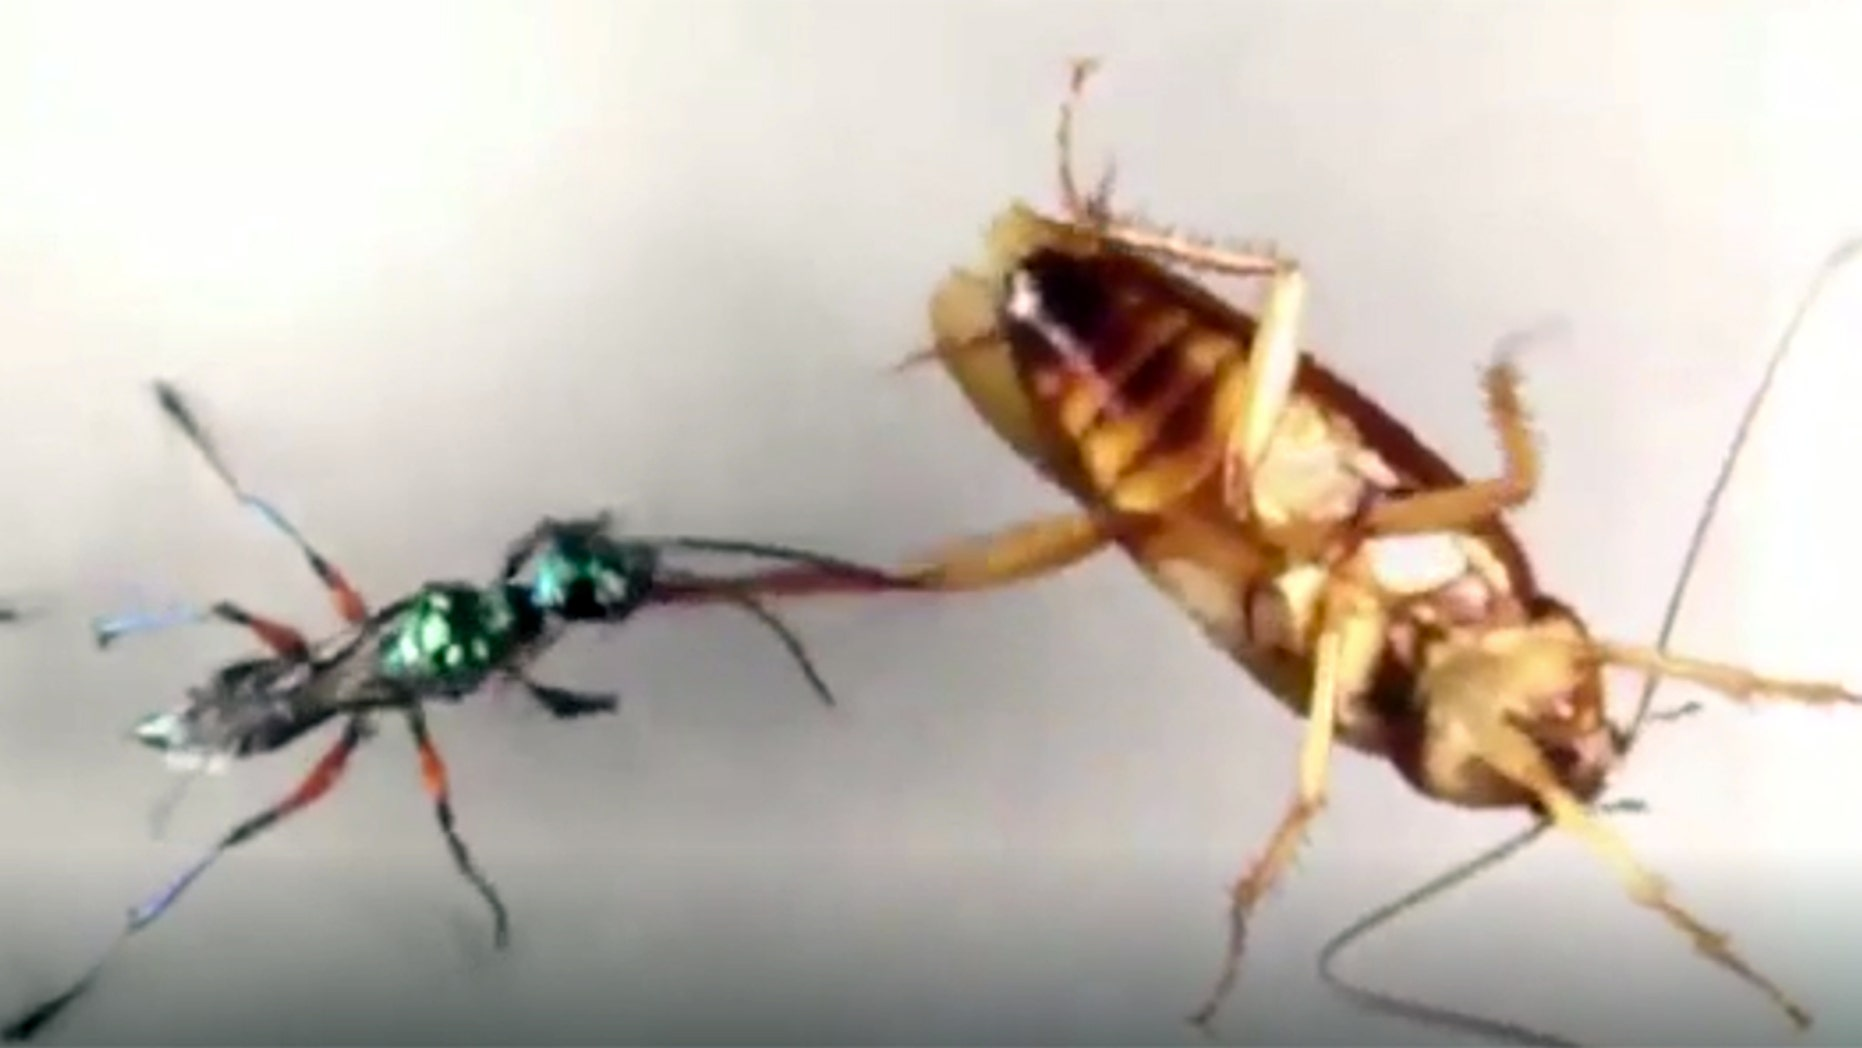 Professor of Vanderbilt University, Ken Catania, examined how American cockroaches can successfully fend off Emerald Jewel Wasps.